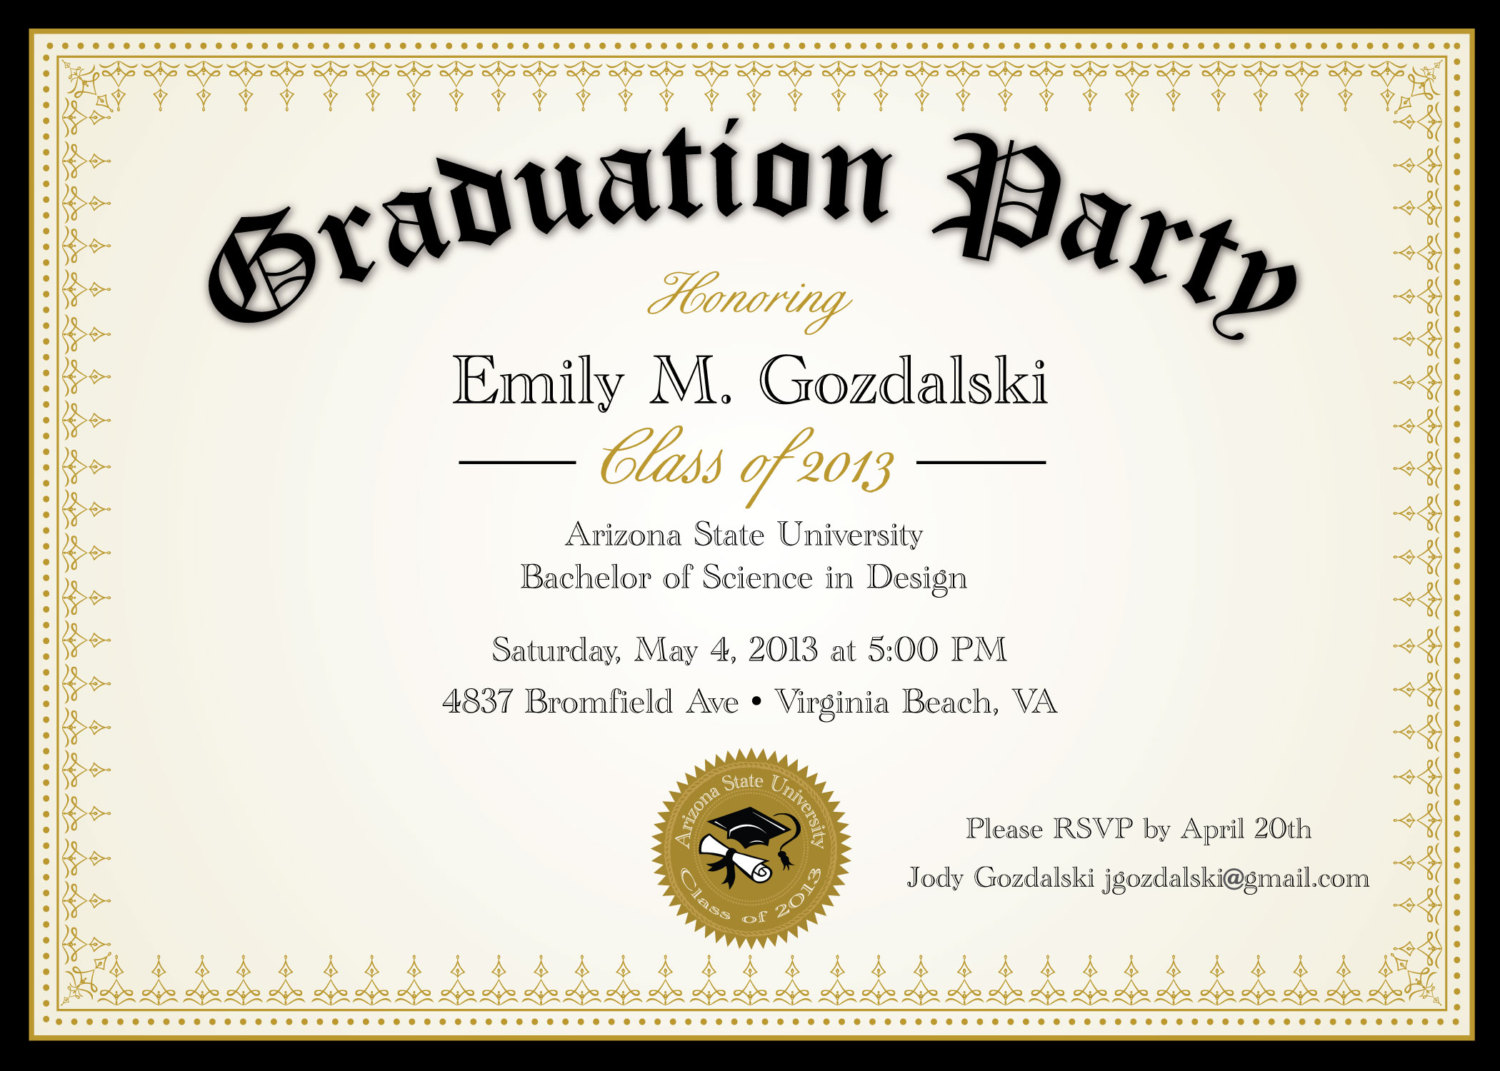 invitations for graduation party templates - mickey mouse, Powerpoint templates